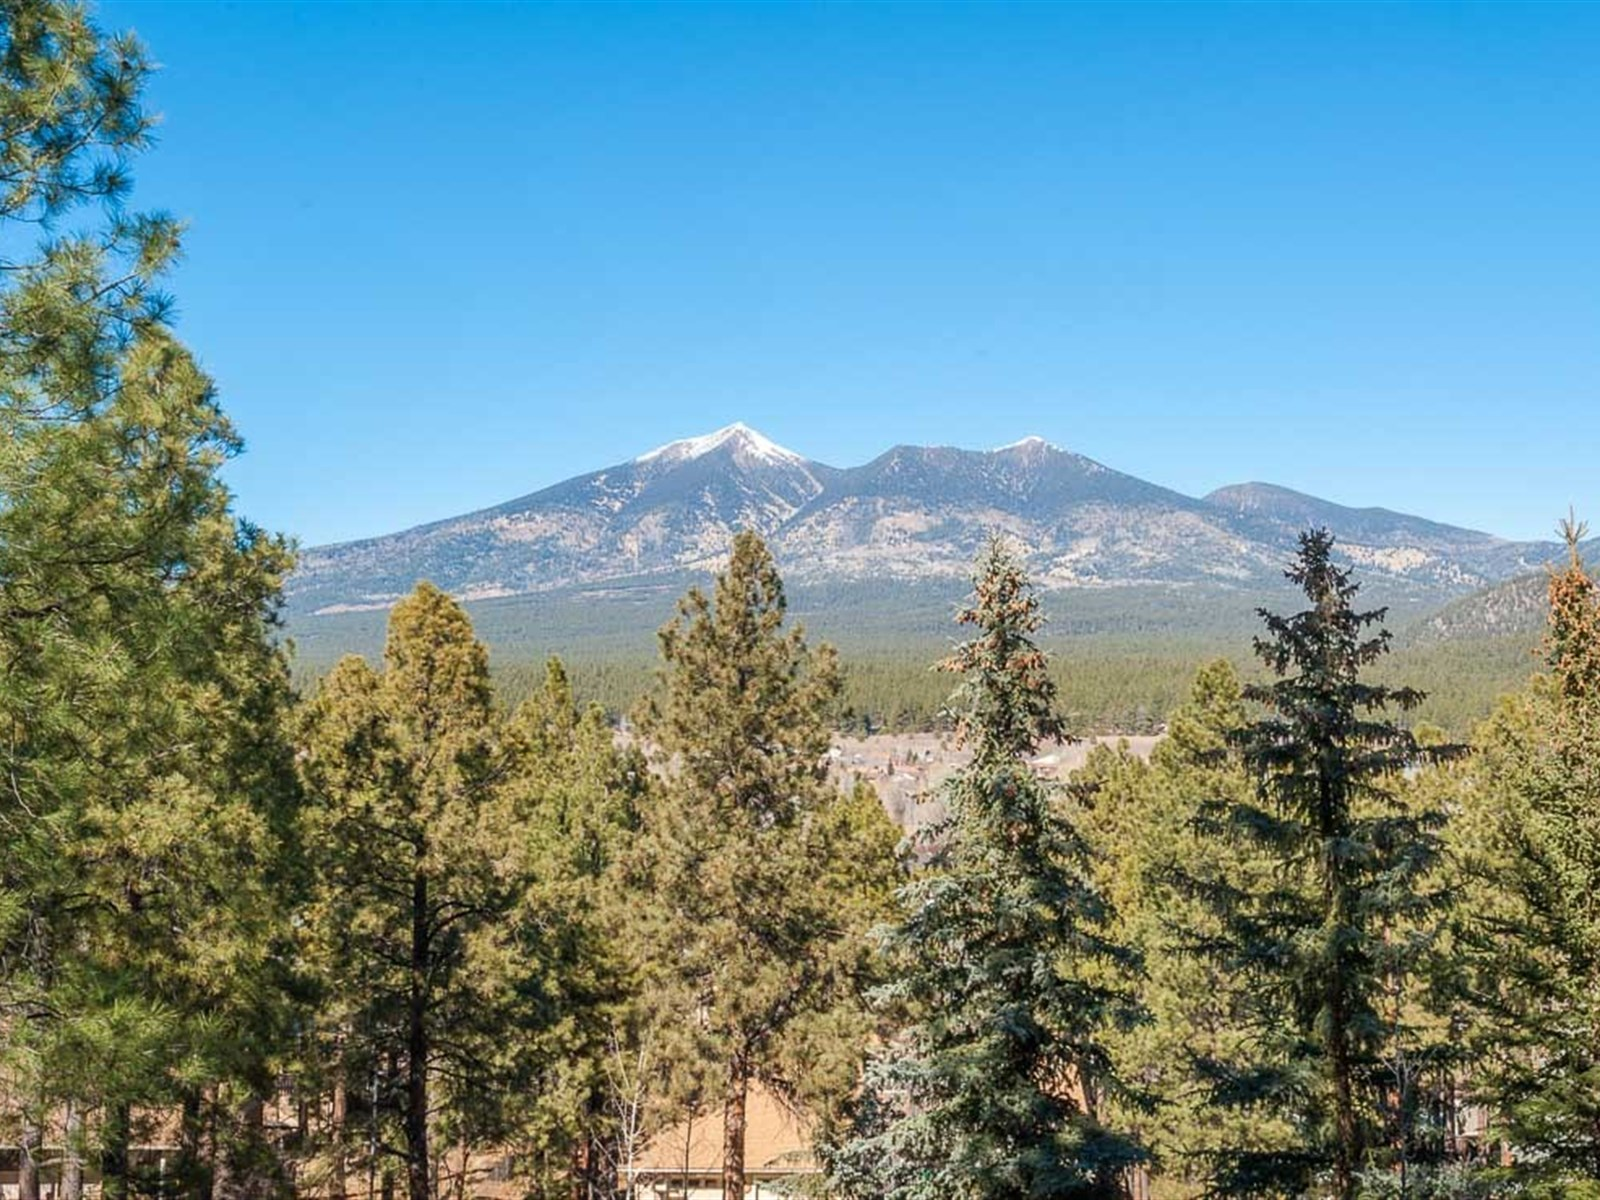 Land for Sale at Privacy in the Pines Lot 25 Foothills WAY Flagstaff, Arizona 86001 United States